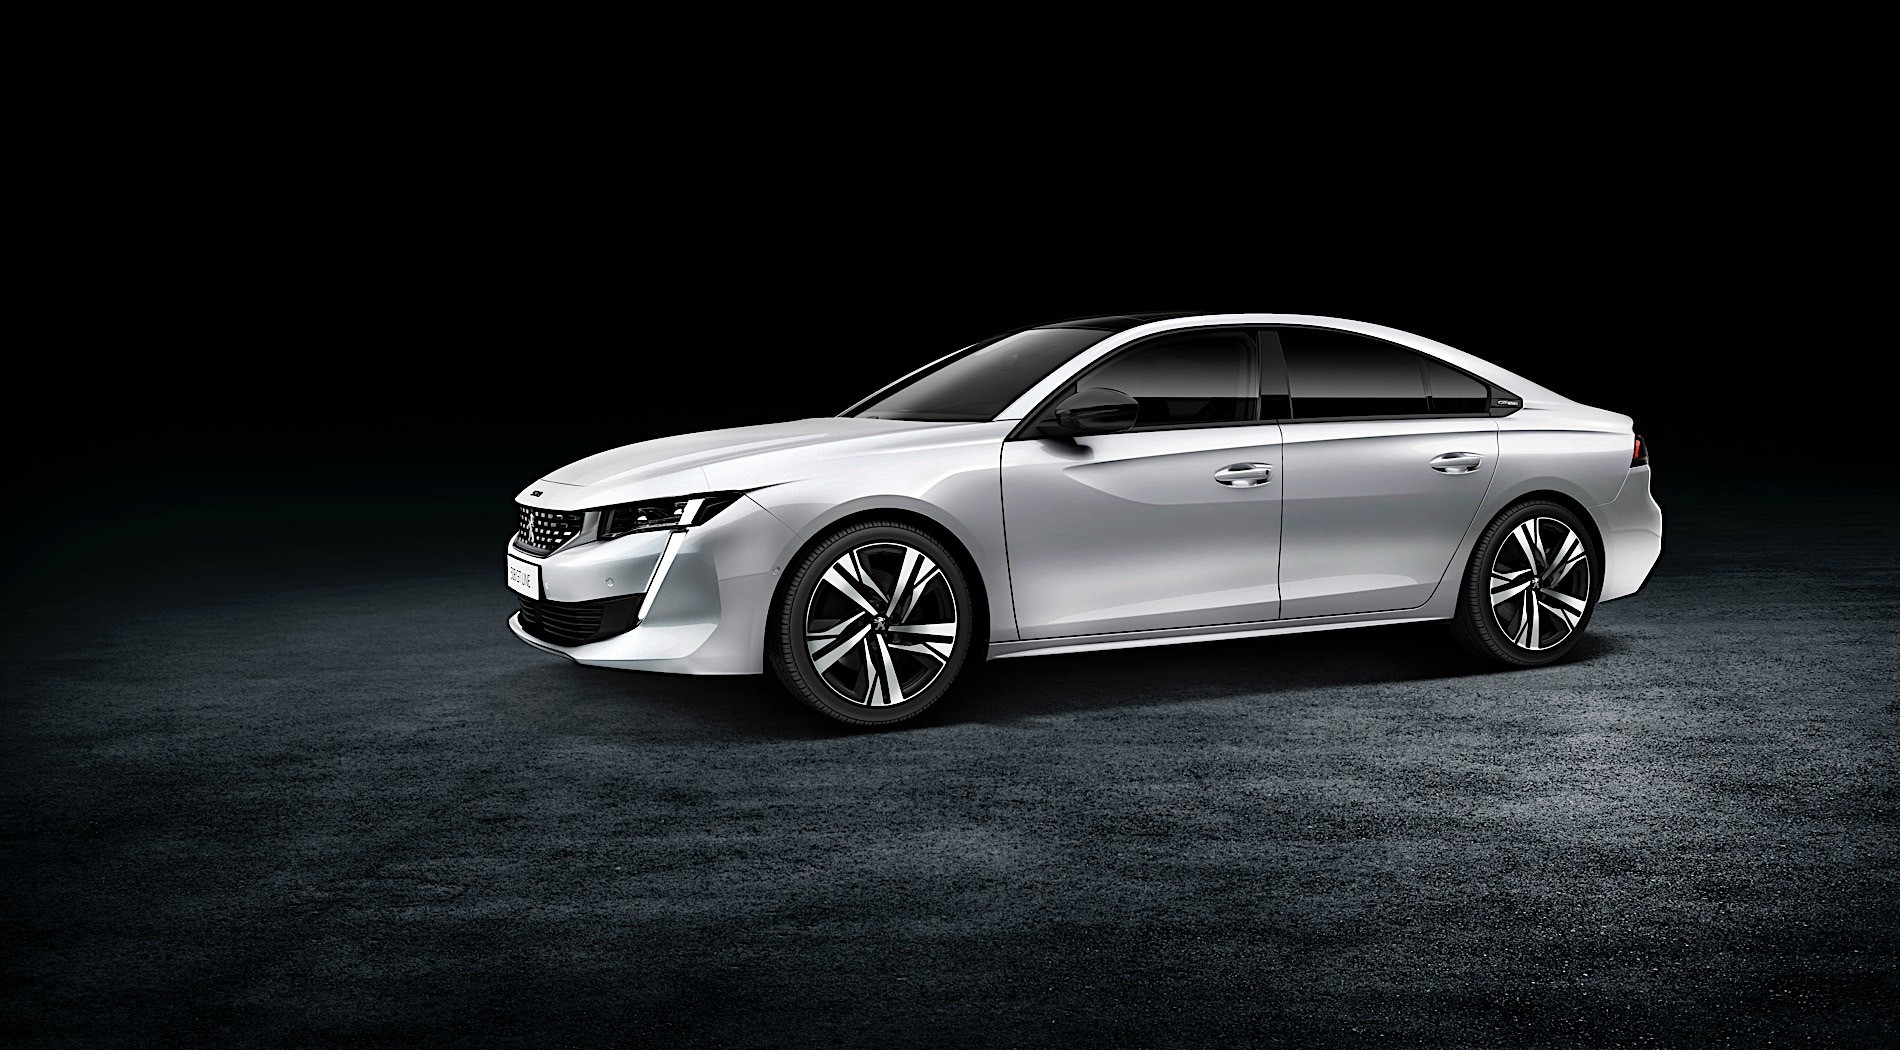 2018 Peugeot 508 Revealed in Full Glory, GT Version Confirmed - autoevolution